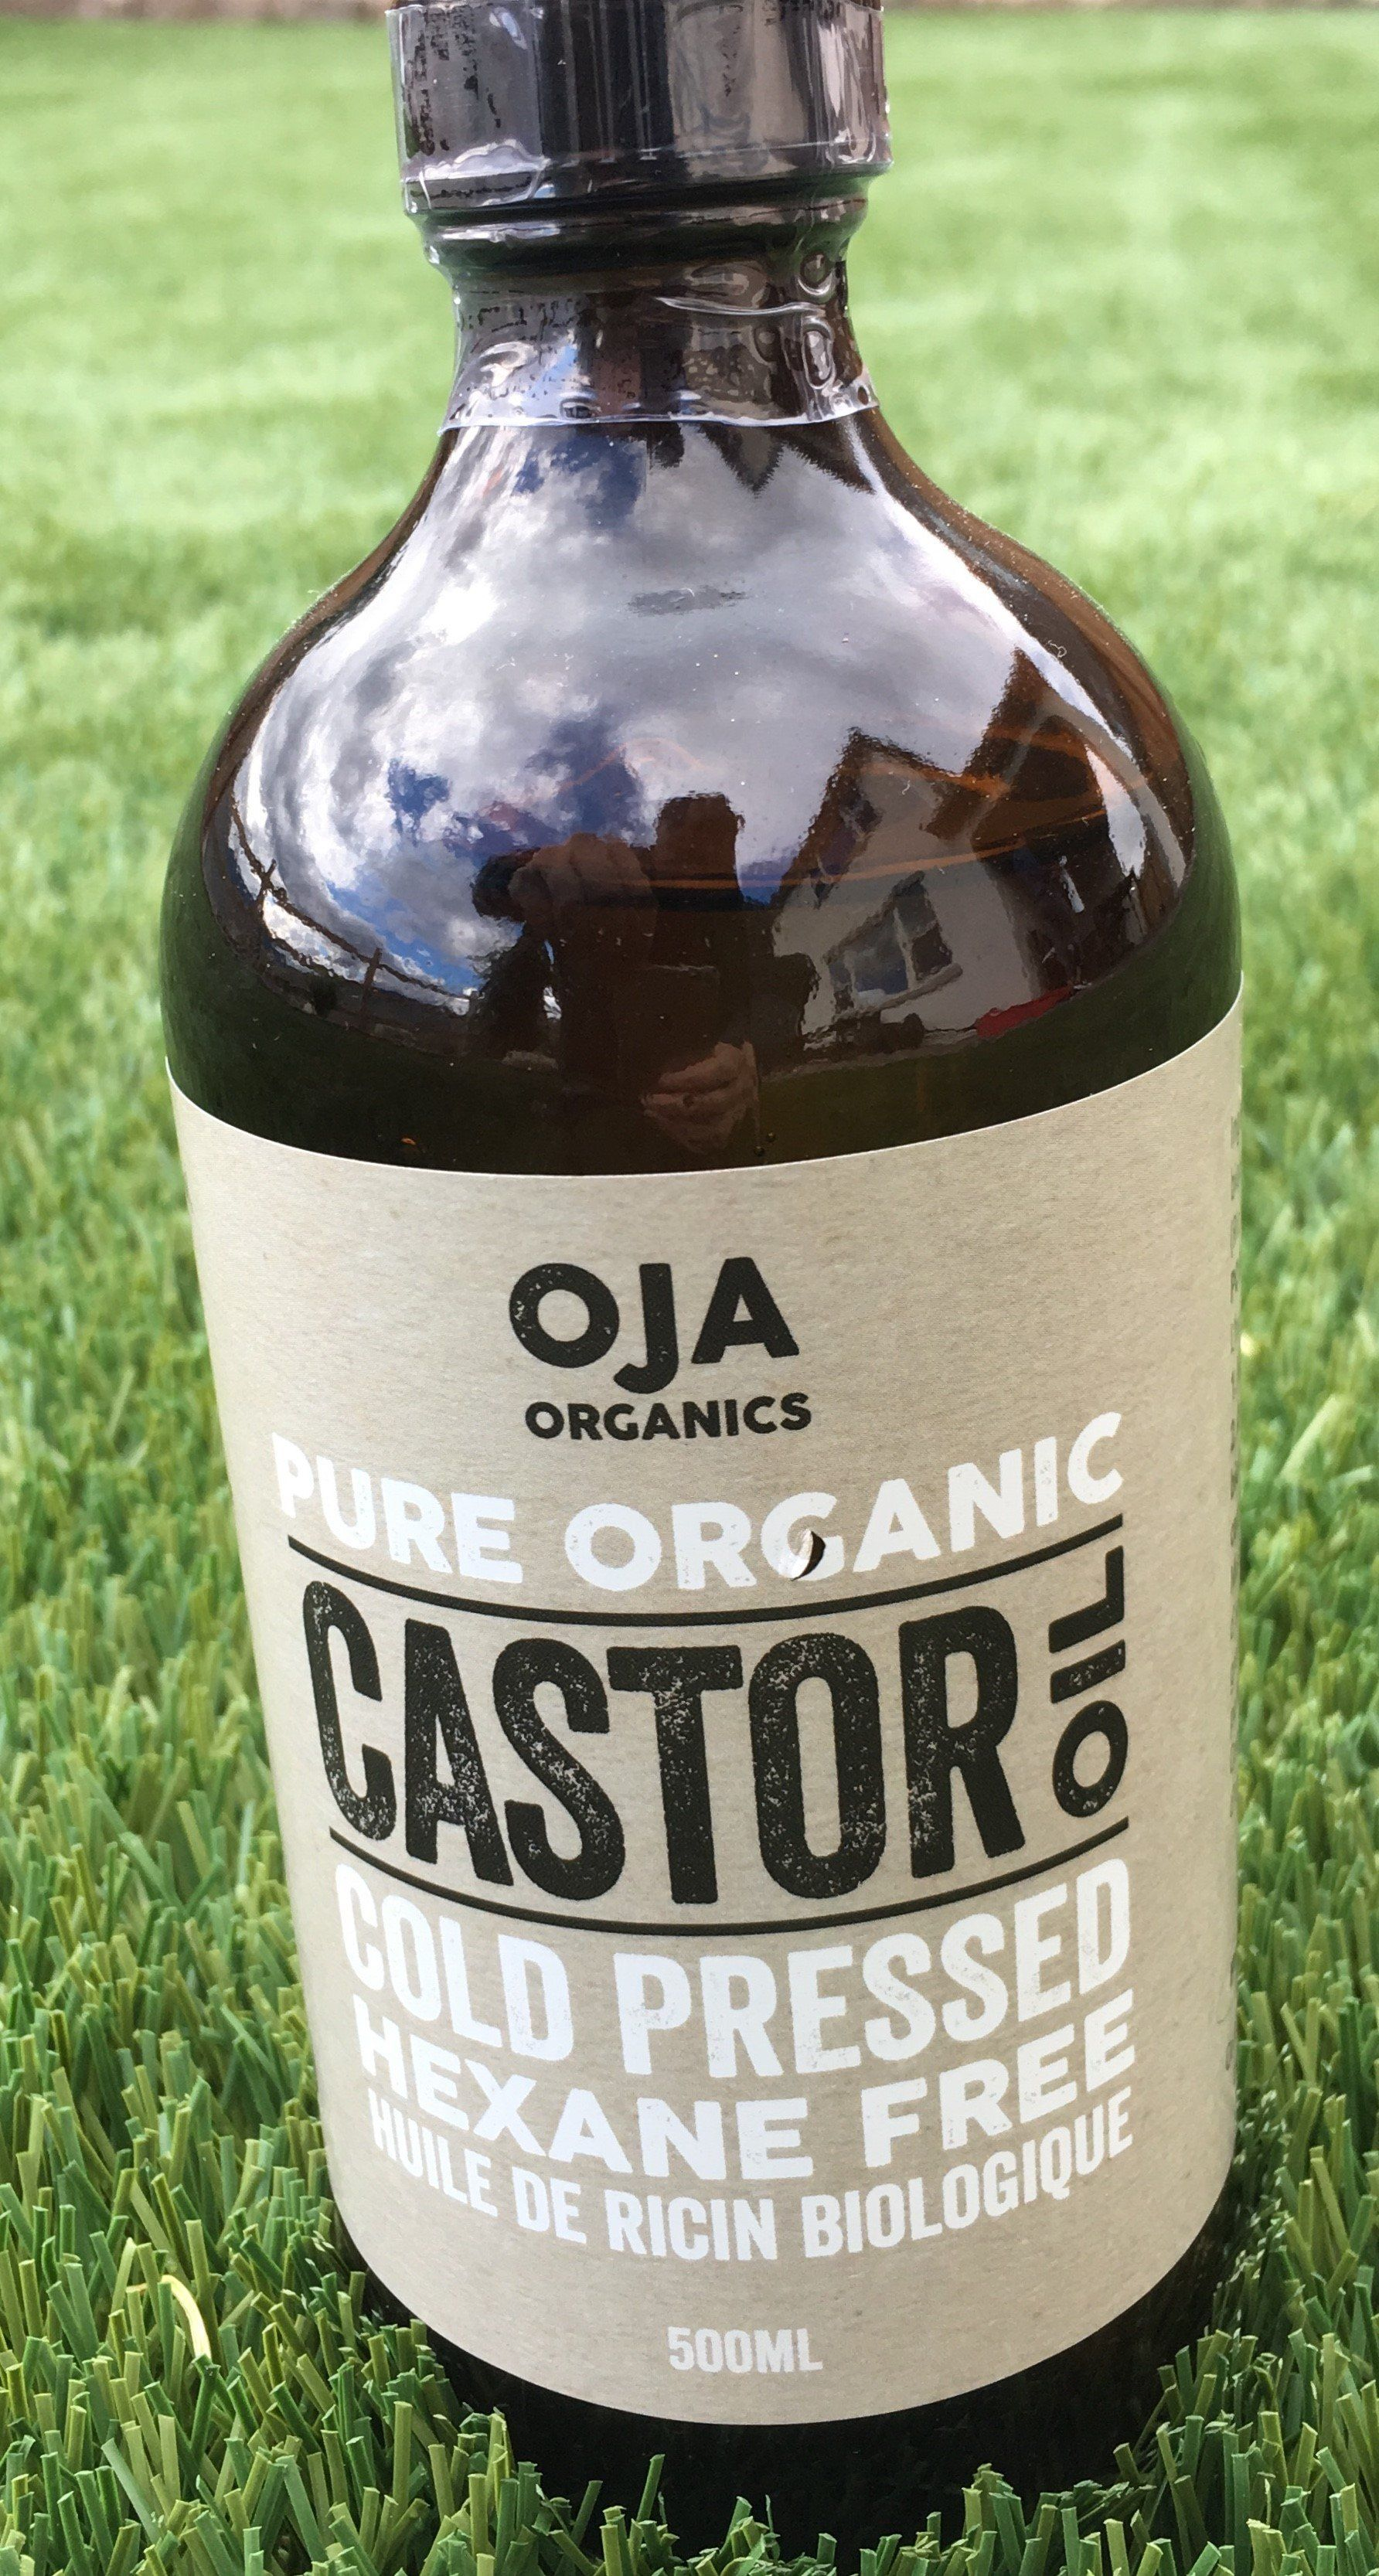 Supplements & Vitamins - Oja - Organic Castor Oil, 500mL